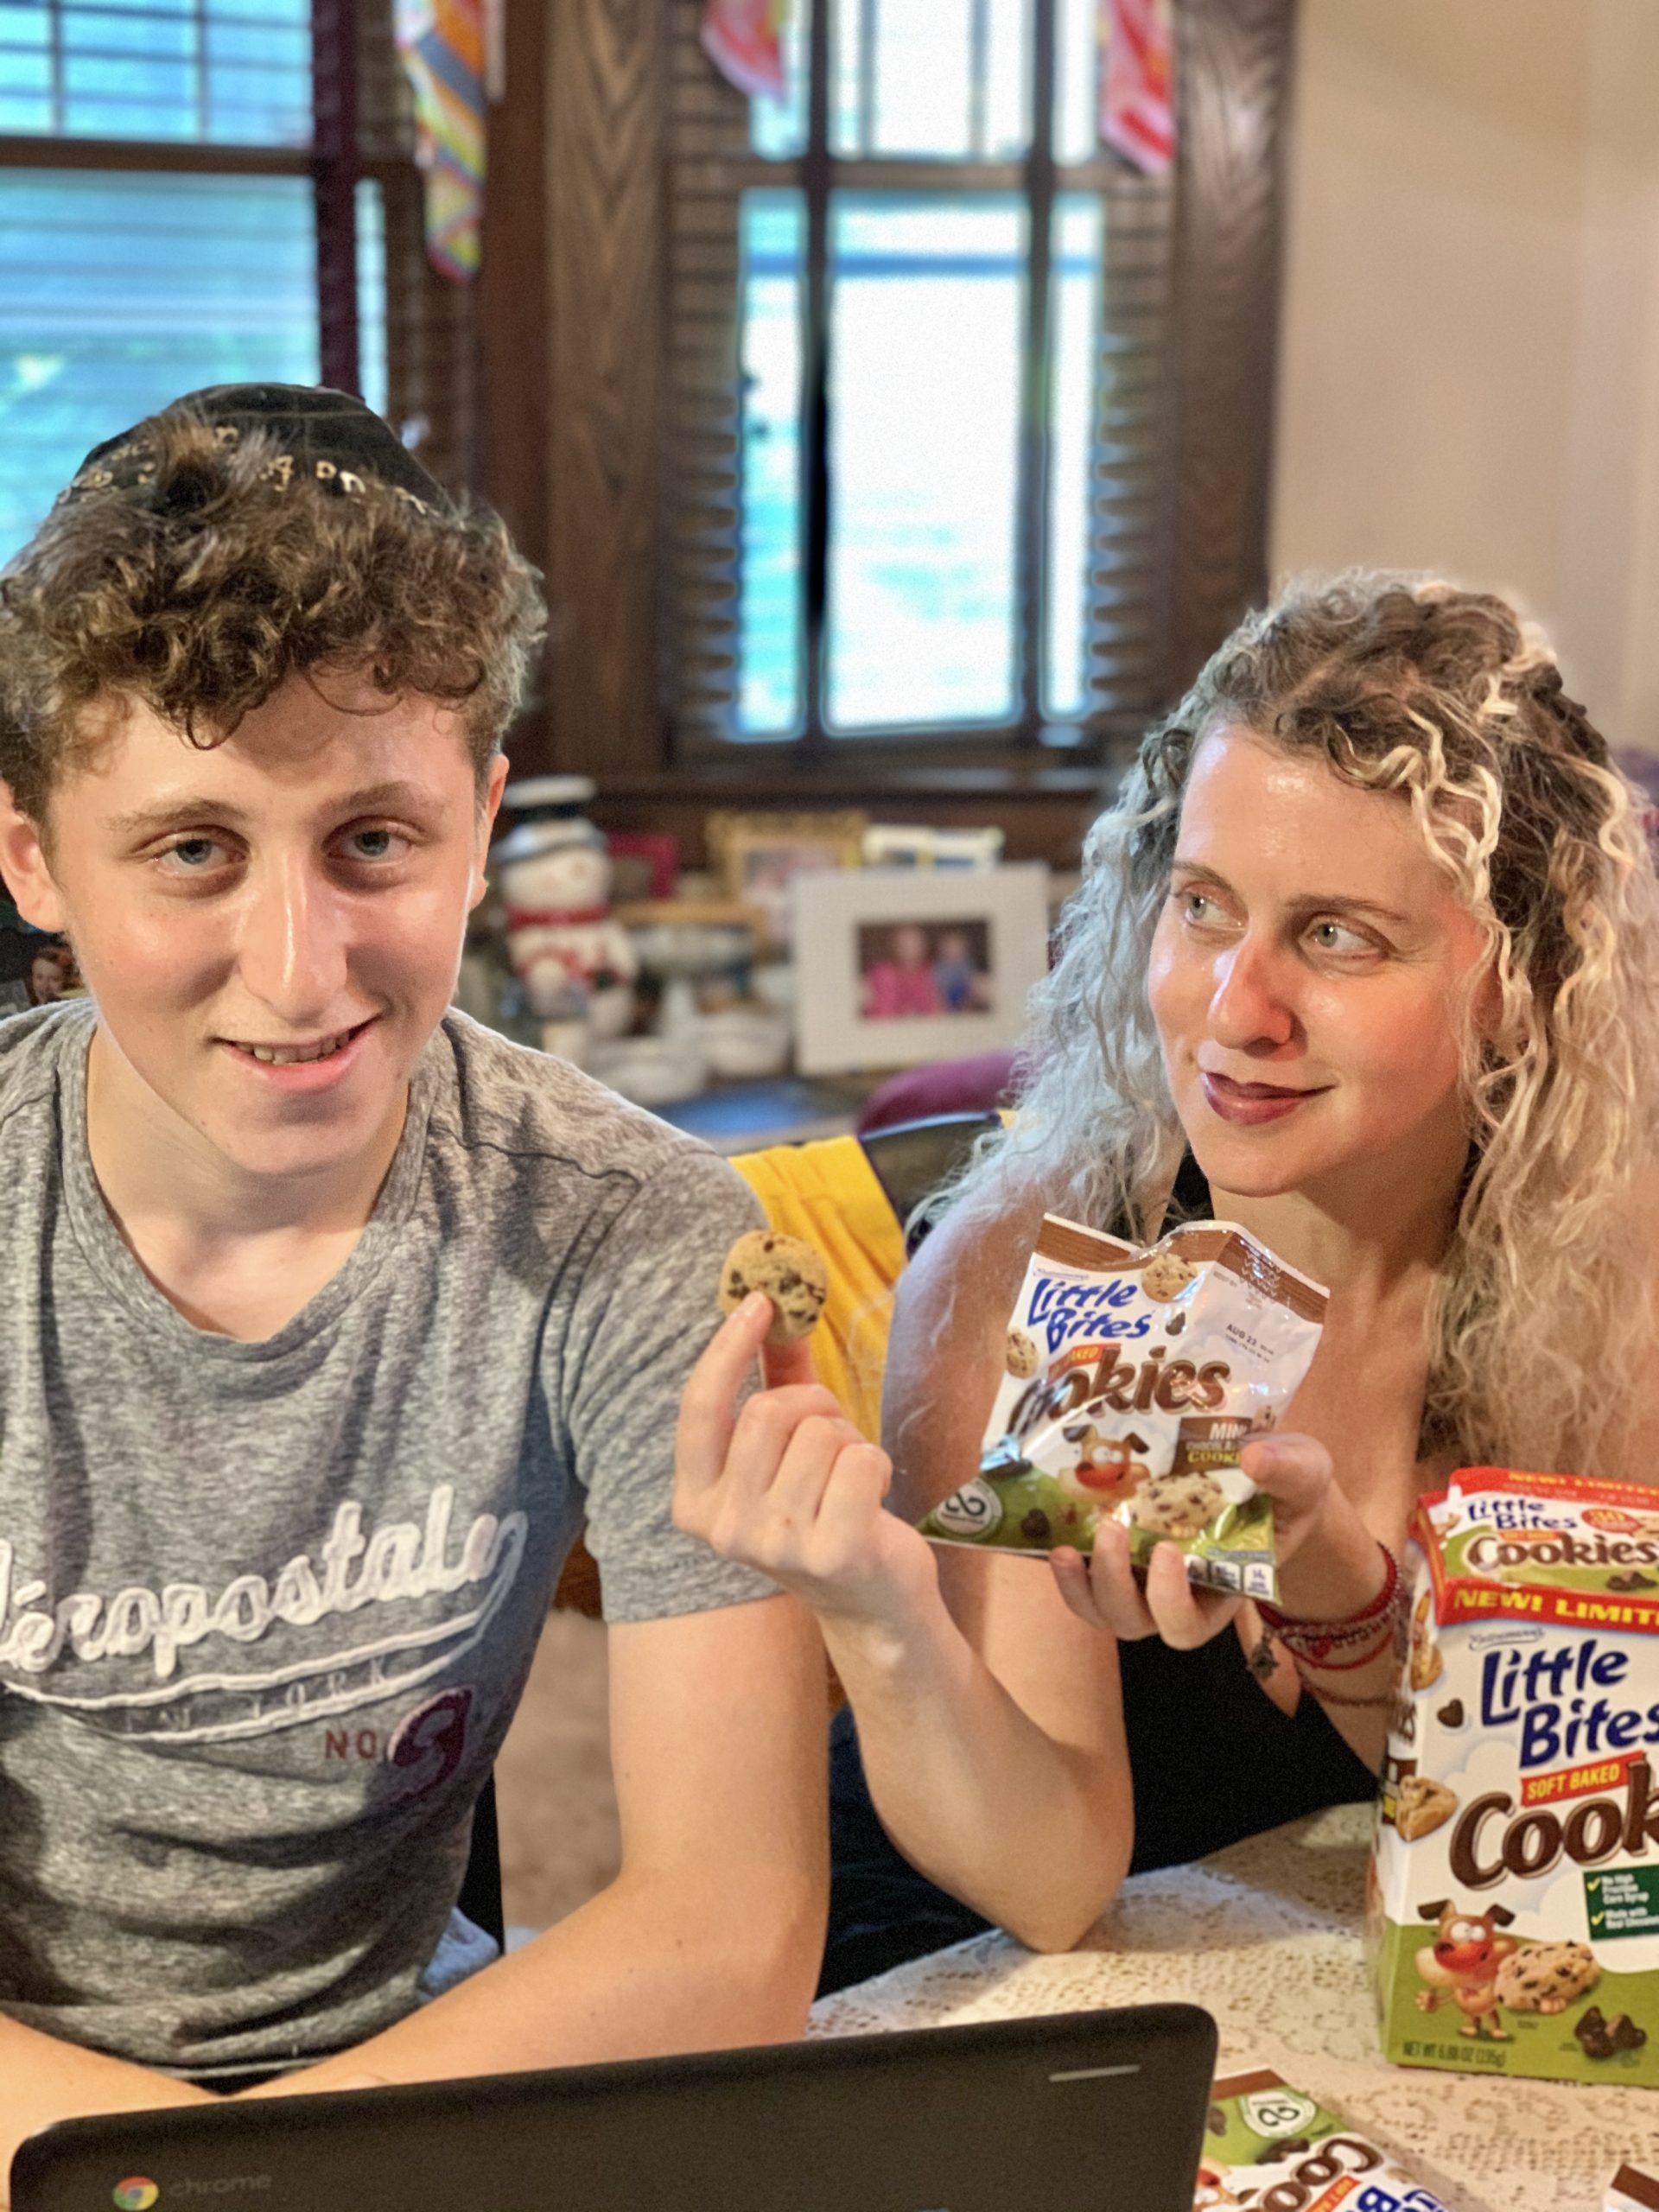 Parenting Lessons and an Entenmann's Little Bites® giveaway!